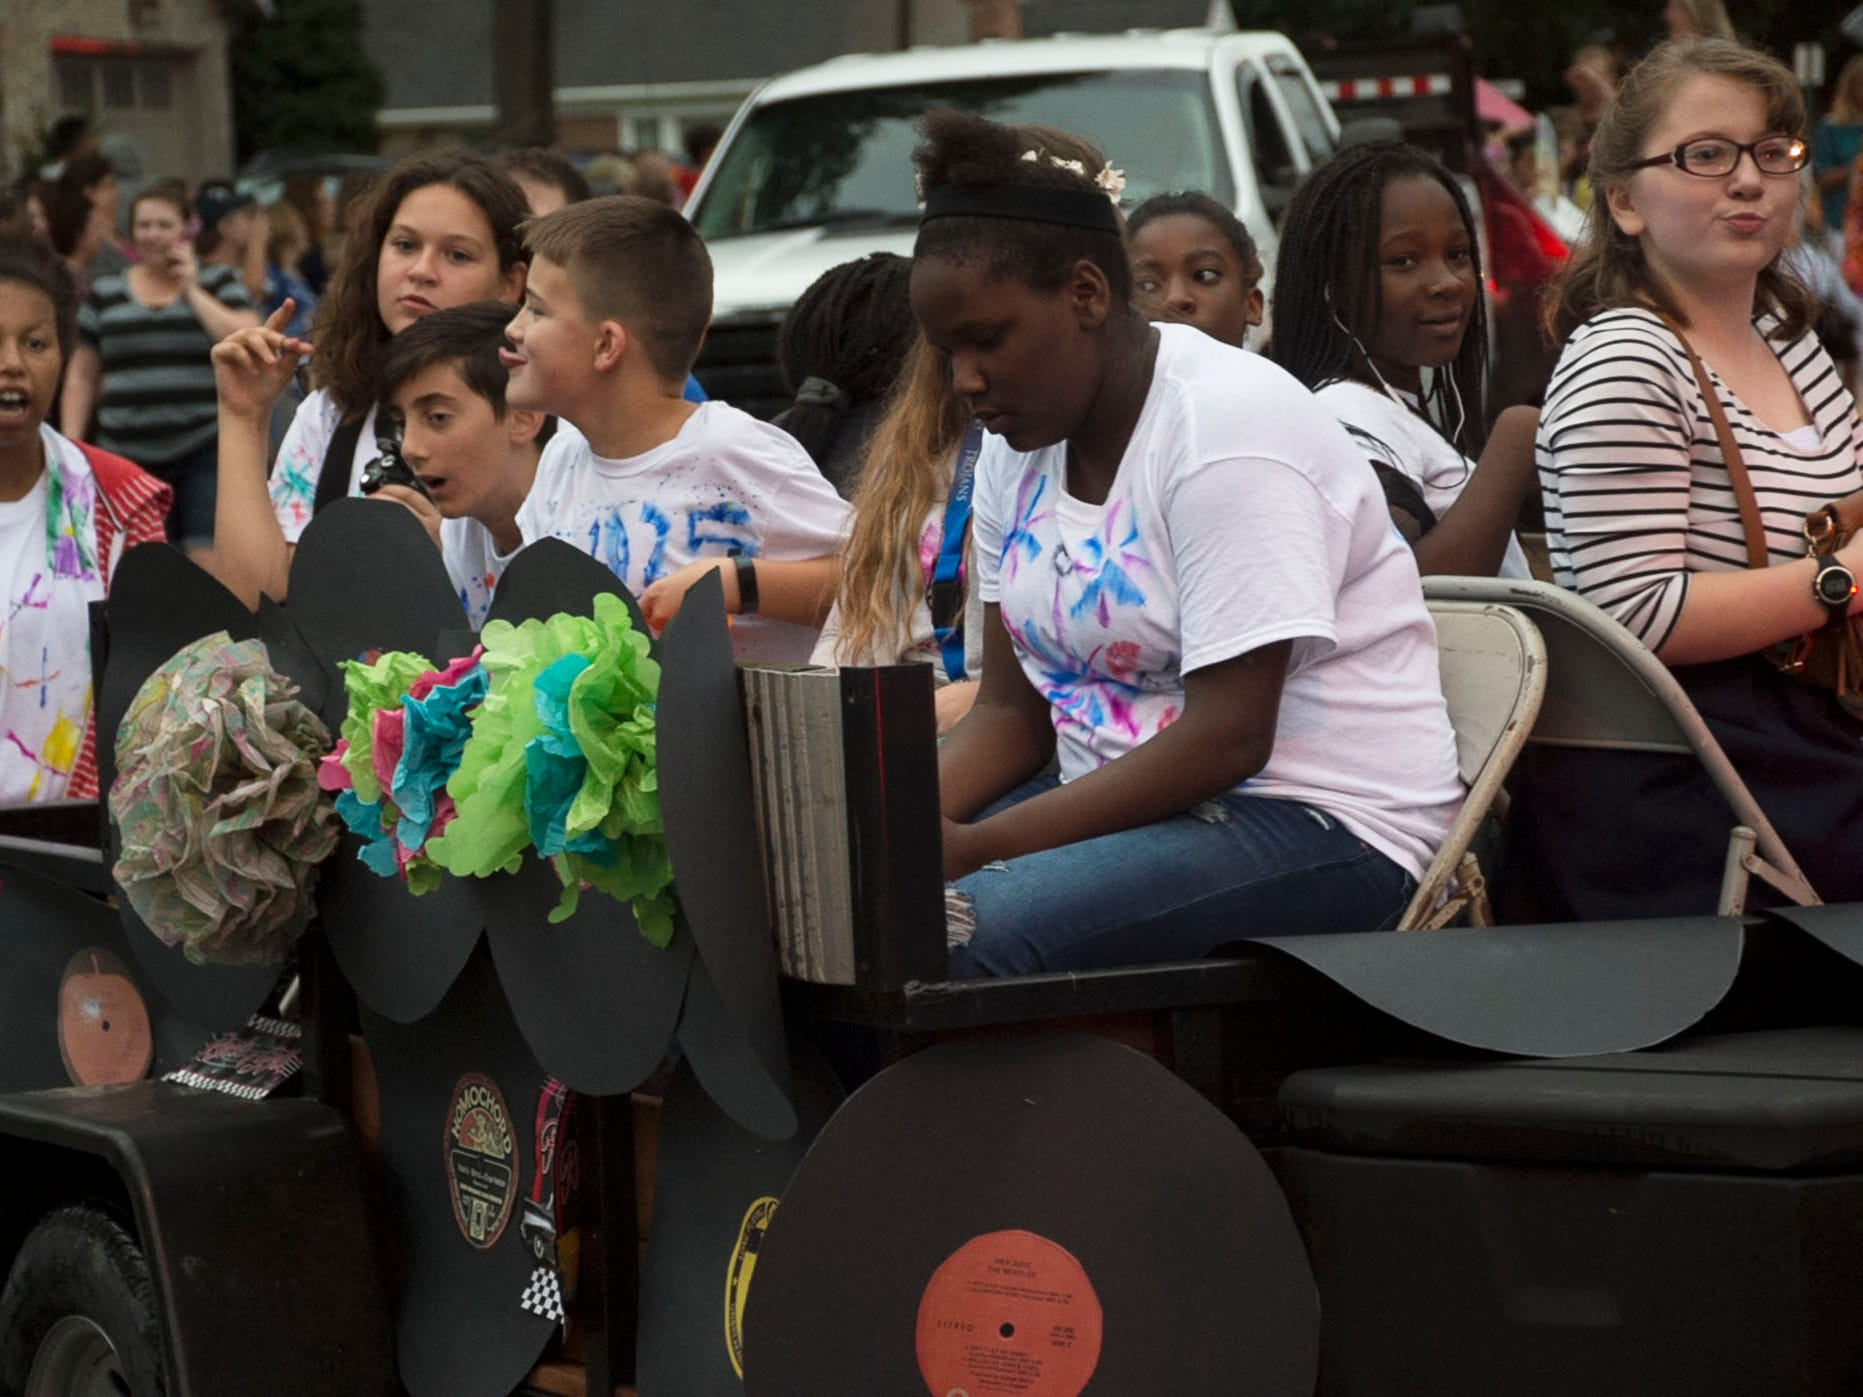 The Chambersburg homecoming parade was held Wednesday evening, September 26, 2018 along McKinley Street.